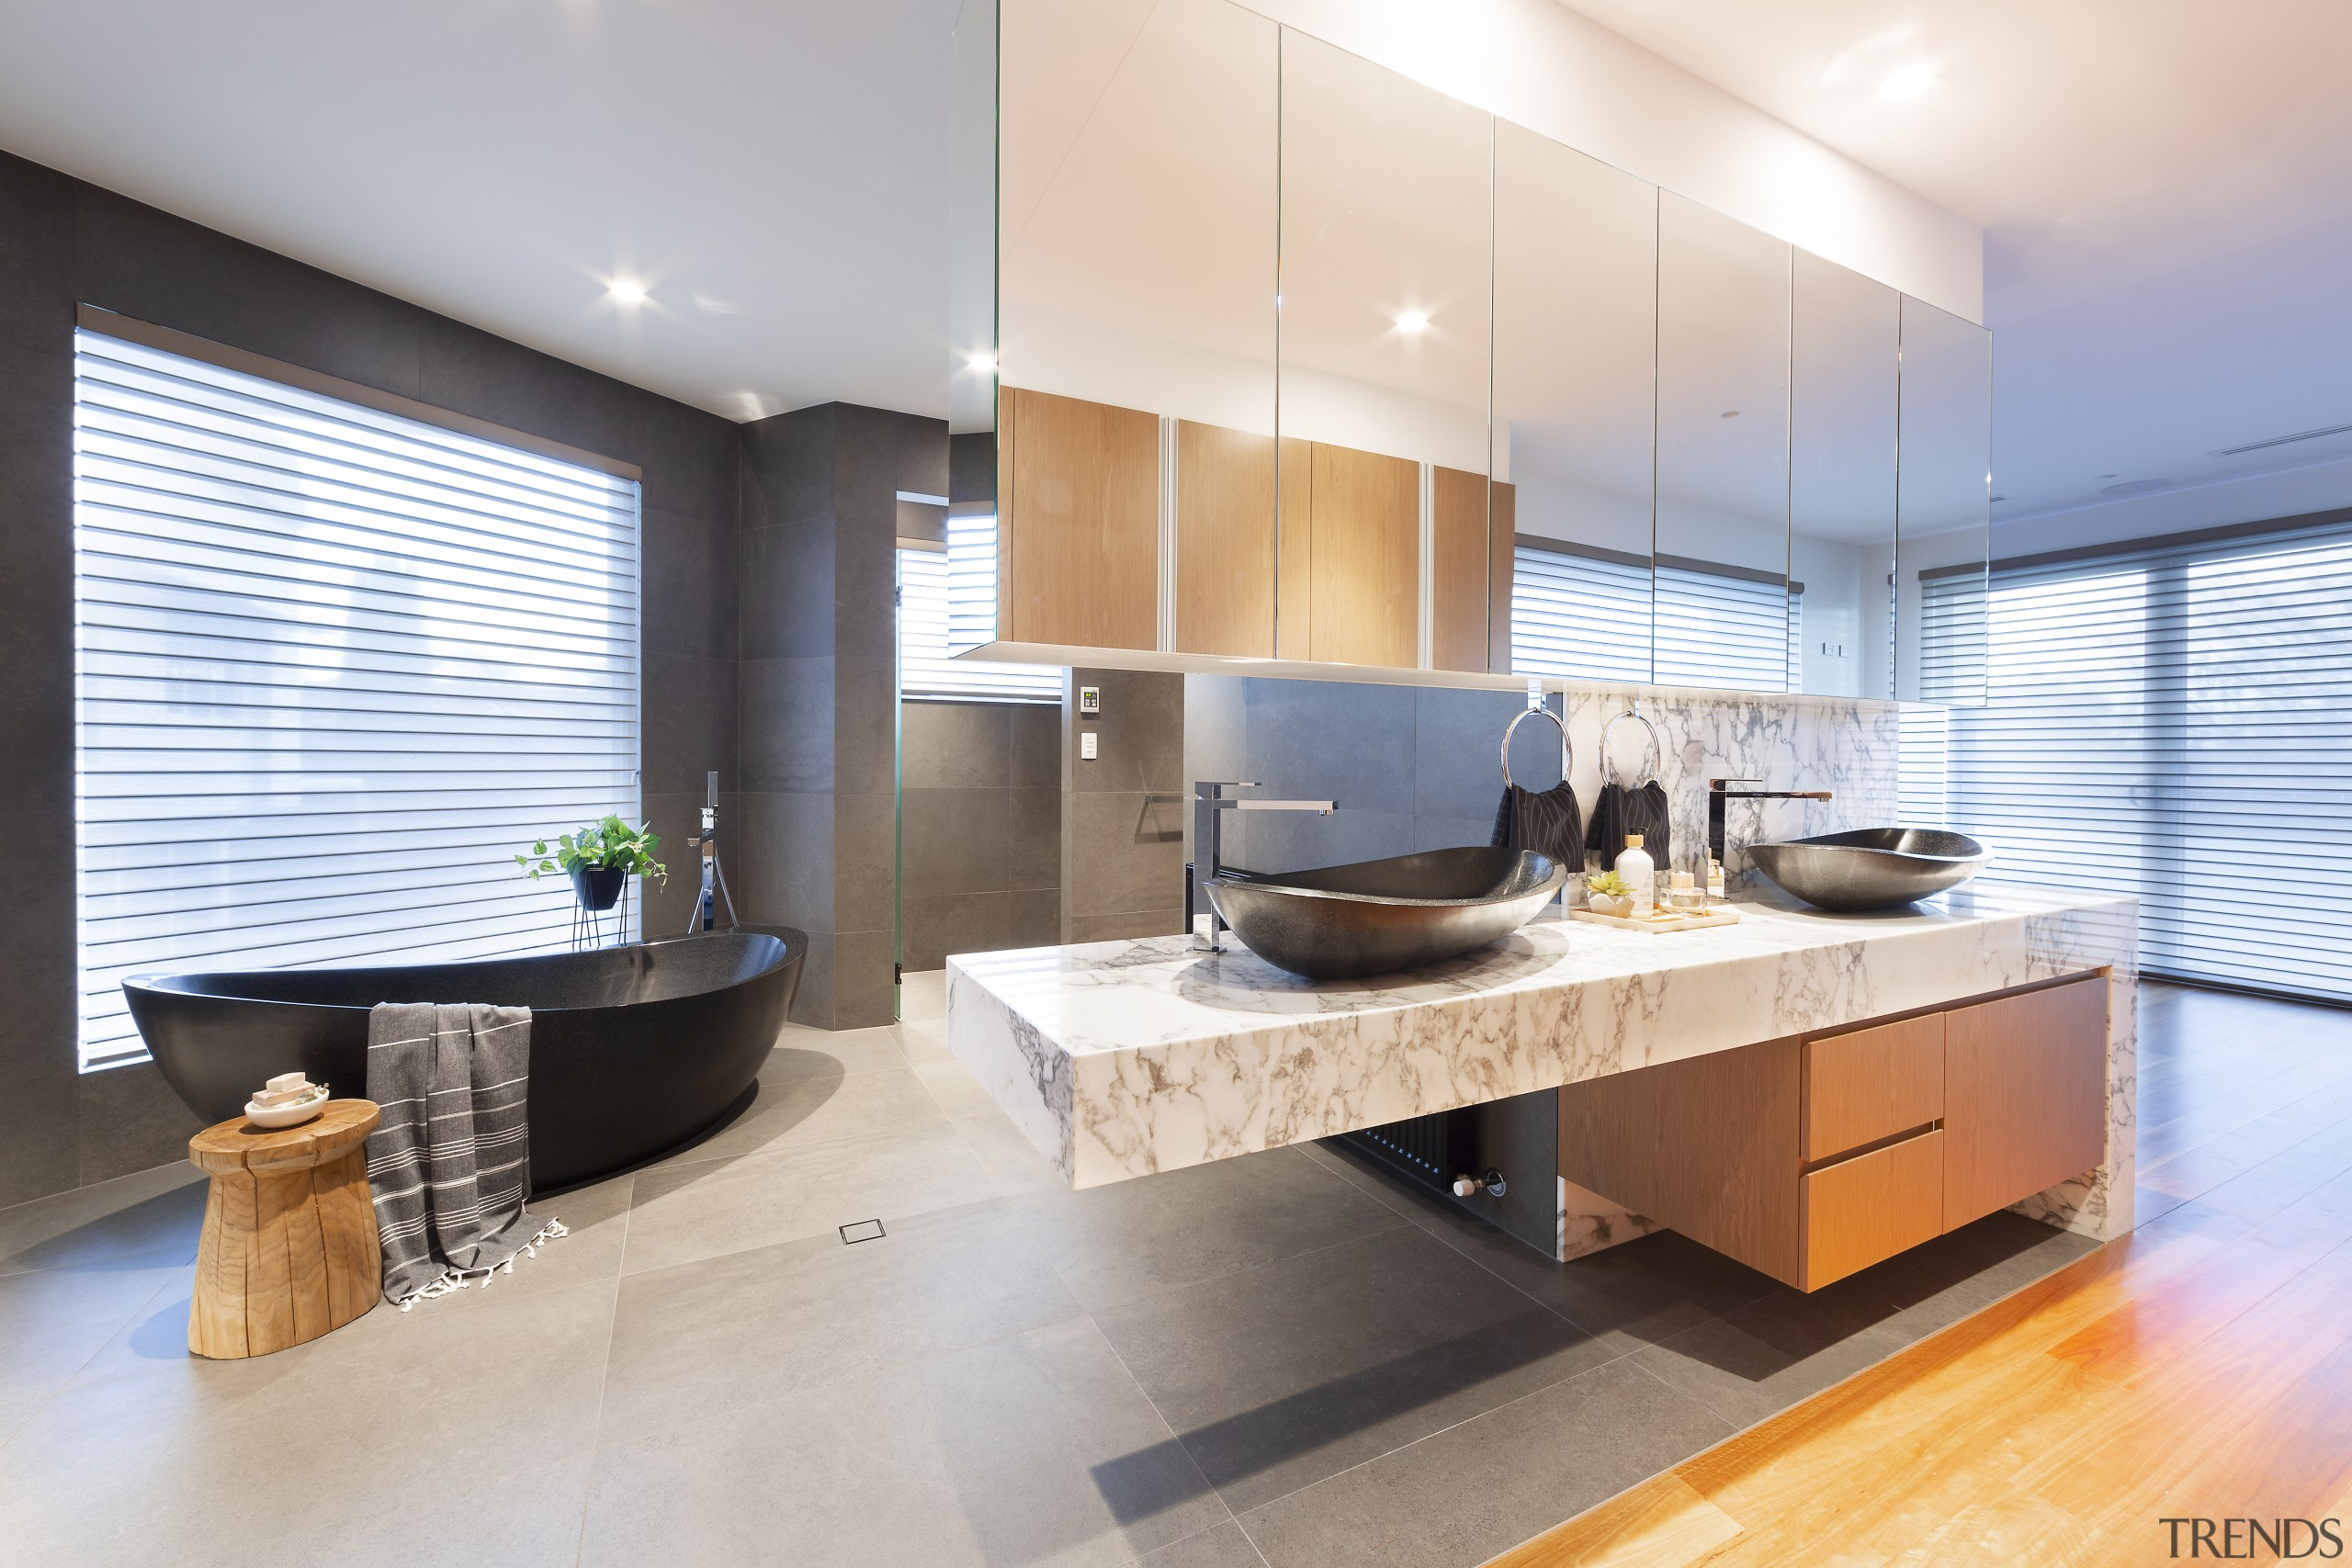 Cantilevered elements play a major role in establishing gray, white